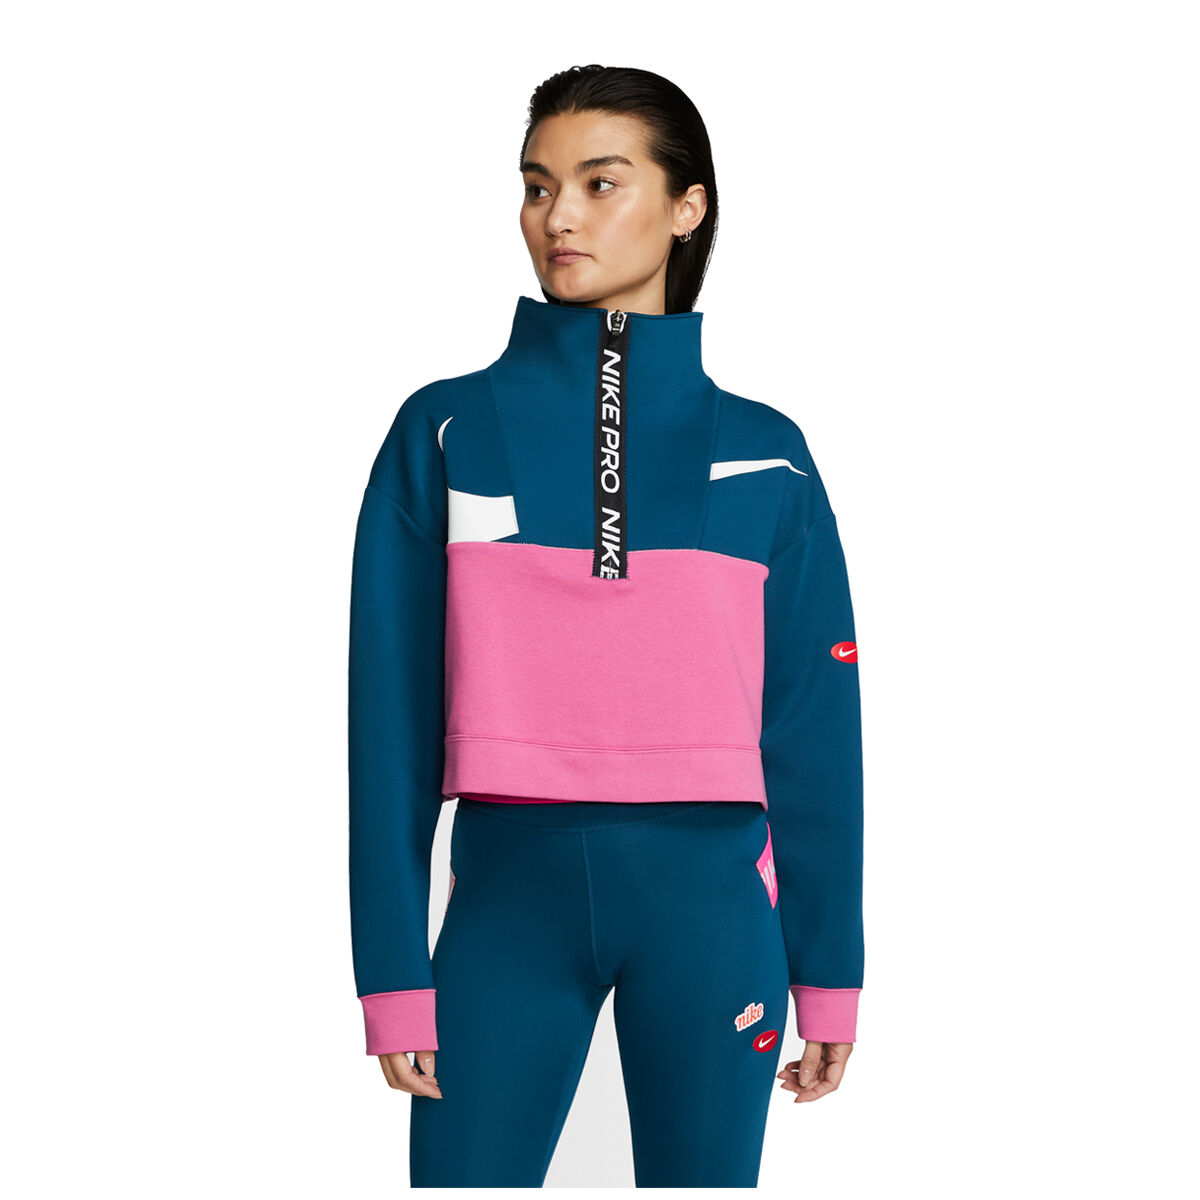 Nike G NSW JKT VCTRY PADDED MID Jacket for Girls, Size